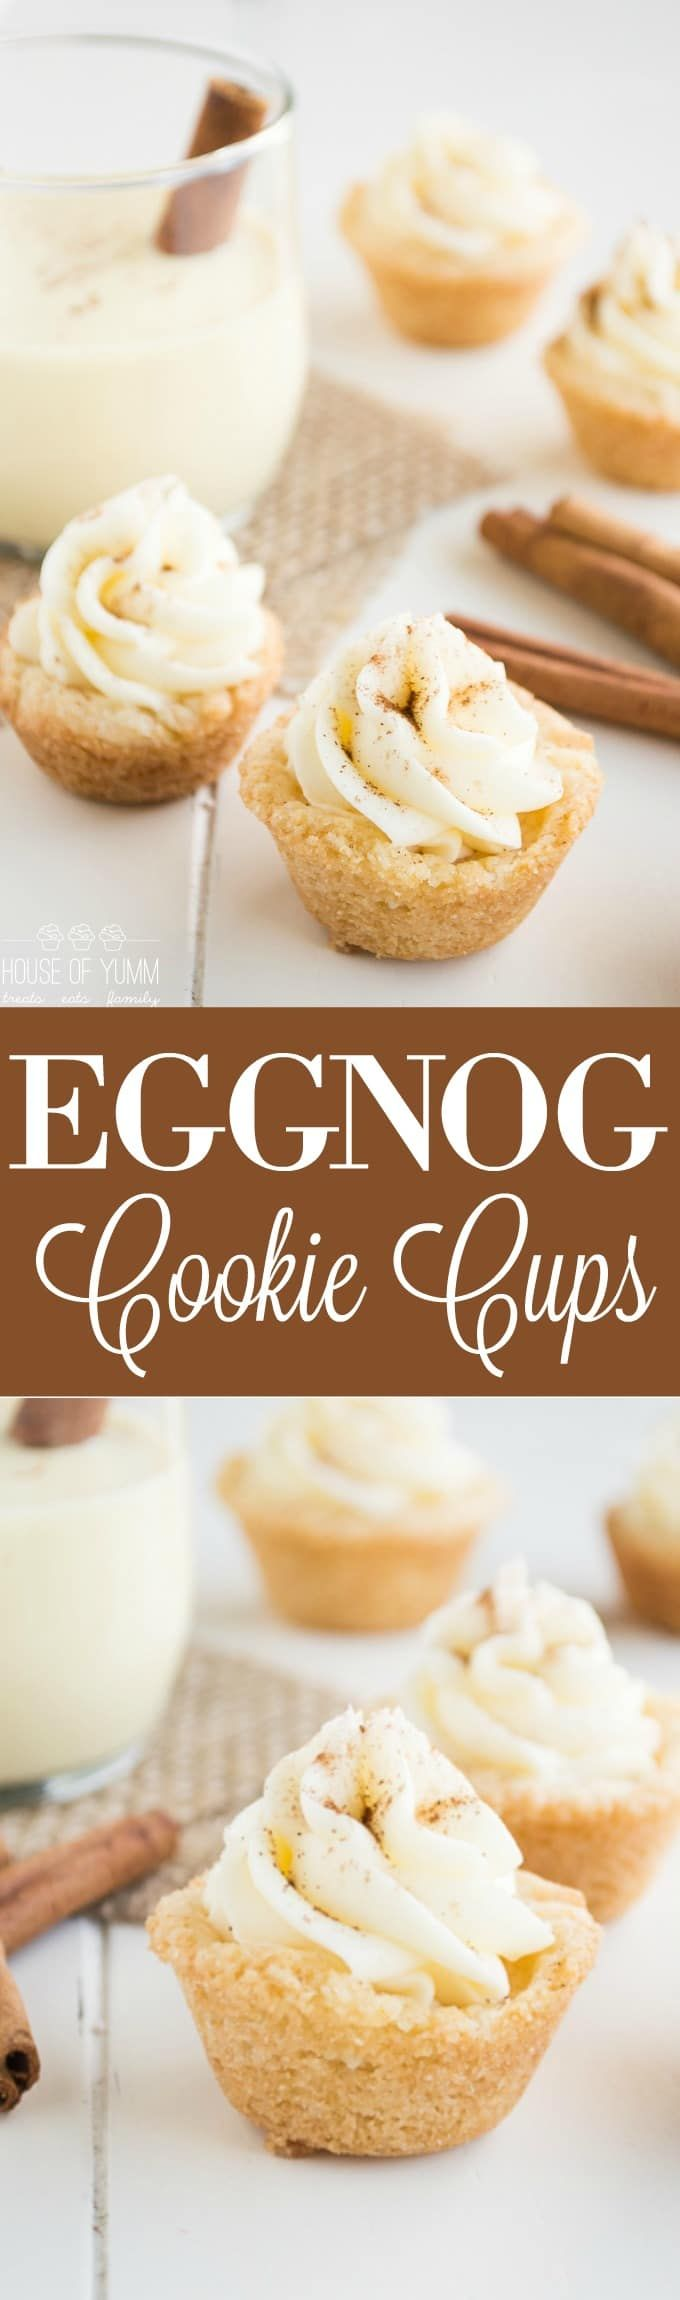 Eggnog Cookie Cups! This sweet, creamy frosting is made with REAL Eggnog! Perfect quick and easy Christmas dessert! Oh my goodness. I cannot believe that it's already almost Christmas! Which means I should probably consider wrapping presents soon. My laundry room is stacked floor to ceiling with Amazon boxes. I have too many kids to be able too sneak out to do shopping. Plus..this way I get the joy of opening Amazon boxes and finding whats inside. Because to be honest, I don't...